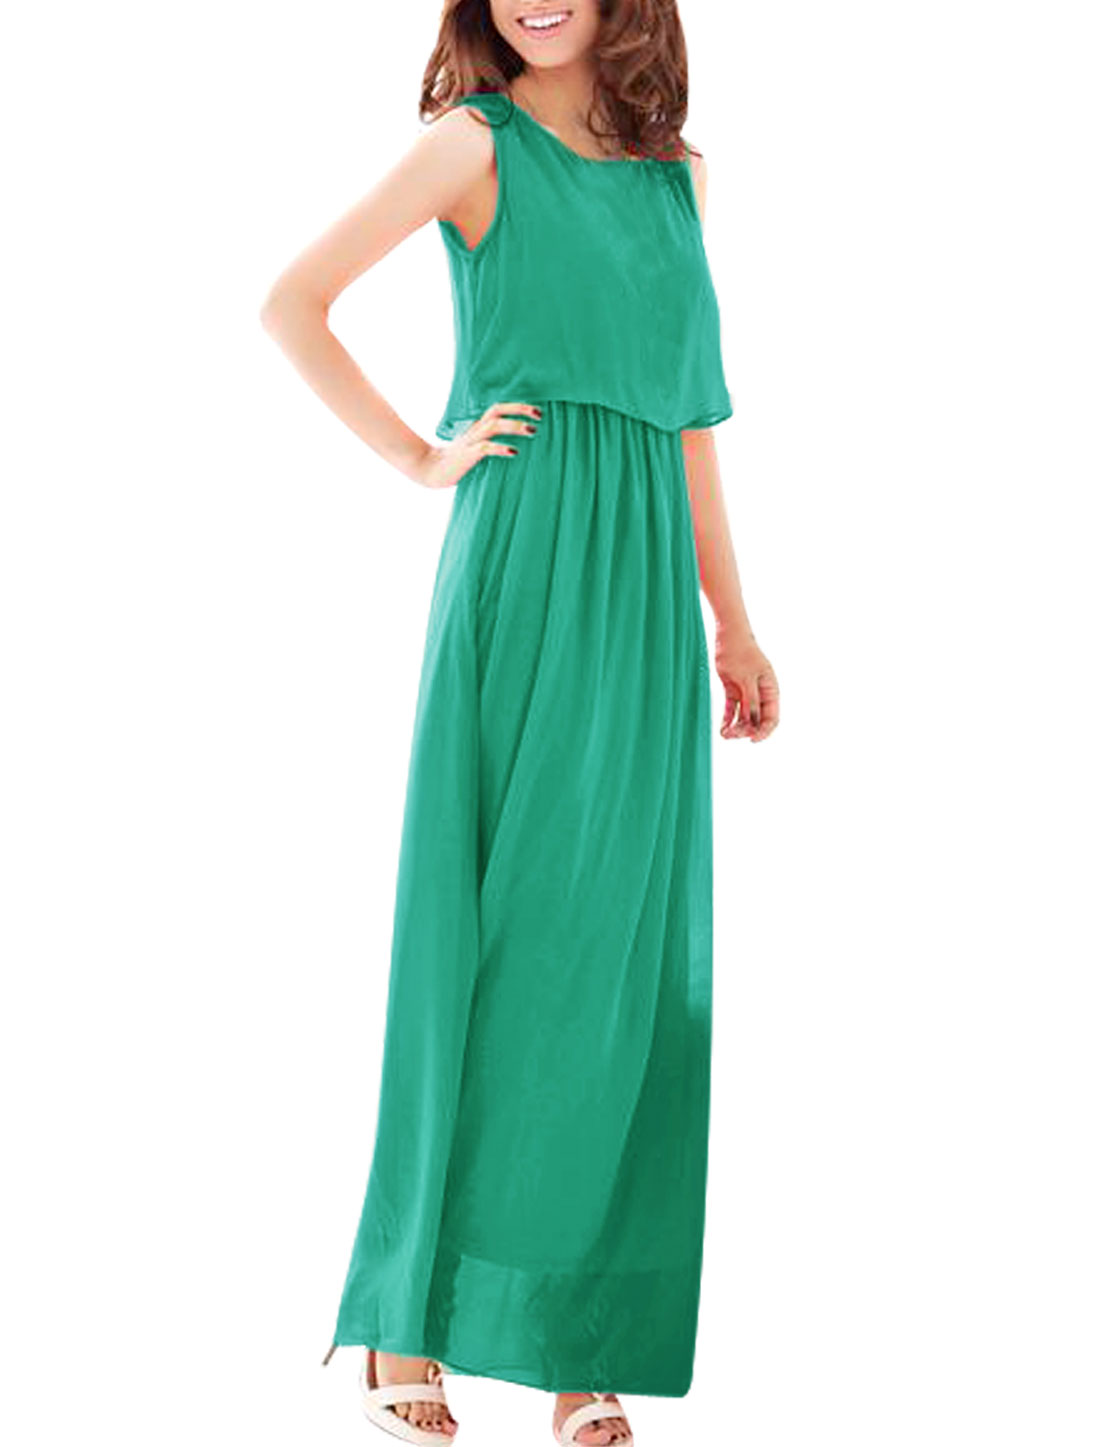 Stylish Women Sea Green Elastic Waist Splice Design Long Dress M